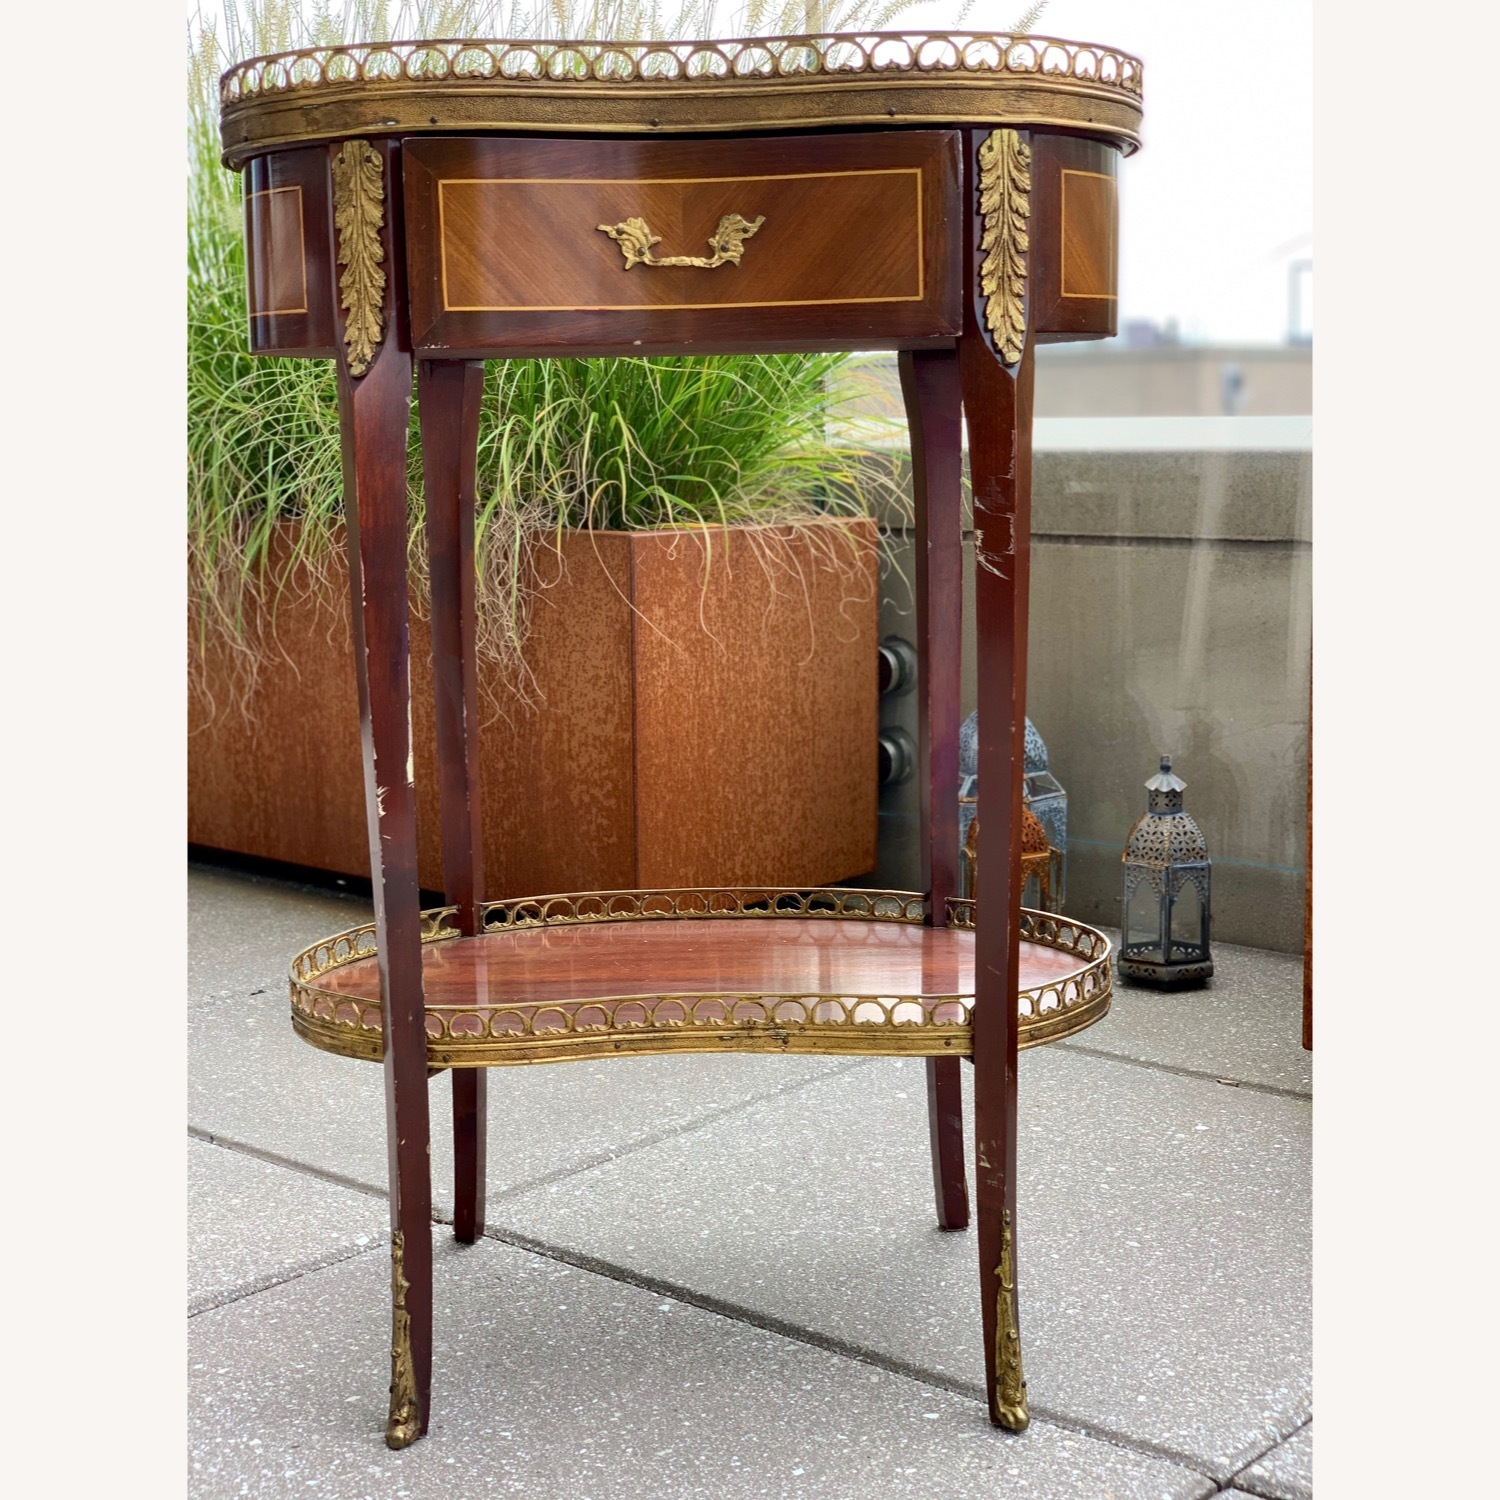 Pair of Kidney Accent Tables 50's Repro - image-2